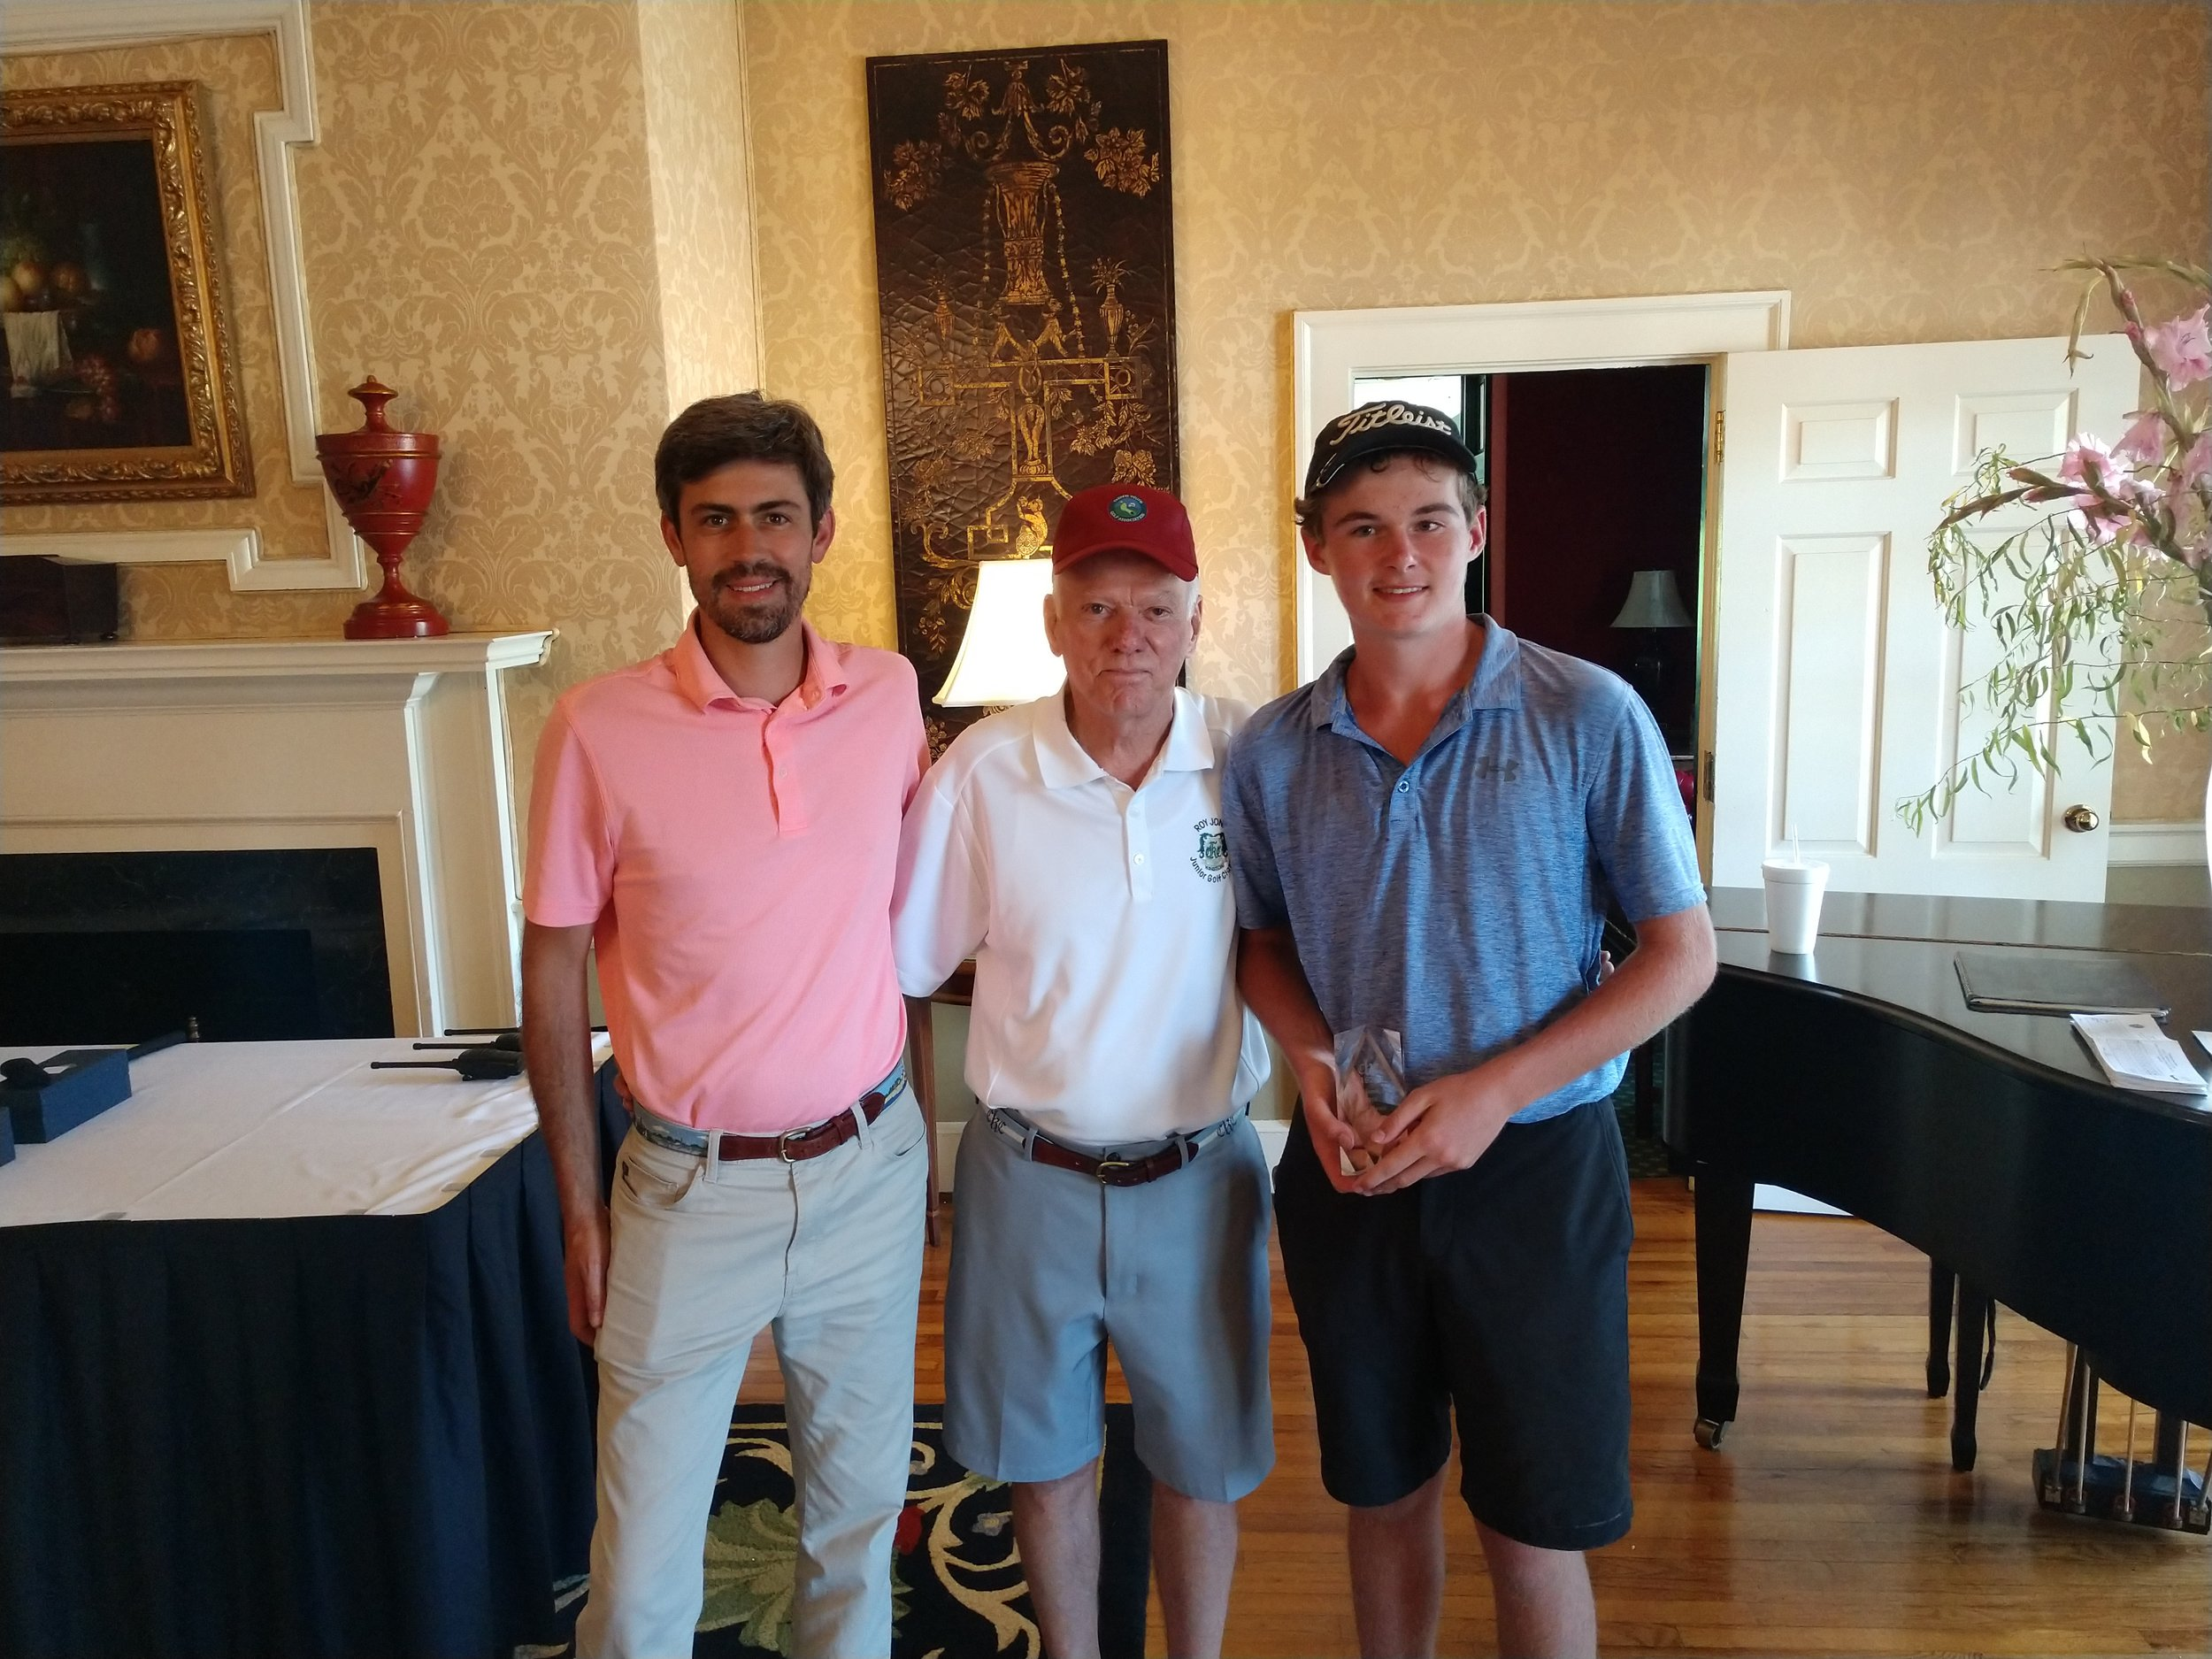 Matthew Richarson, right, finished third in the 14-15 year old boys' division in the Roy Jones Junior Golf Classic, which ended Wednesday. Standing next to Richardson is, from left, golf professional Jason York and tournament founder Roy Jones Jr. Photo by Junious Smith III / Neuse News